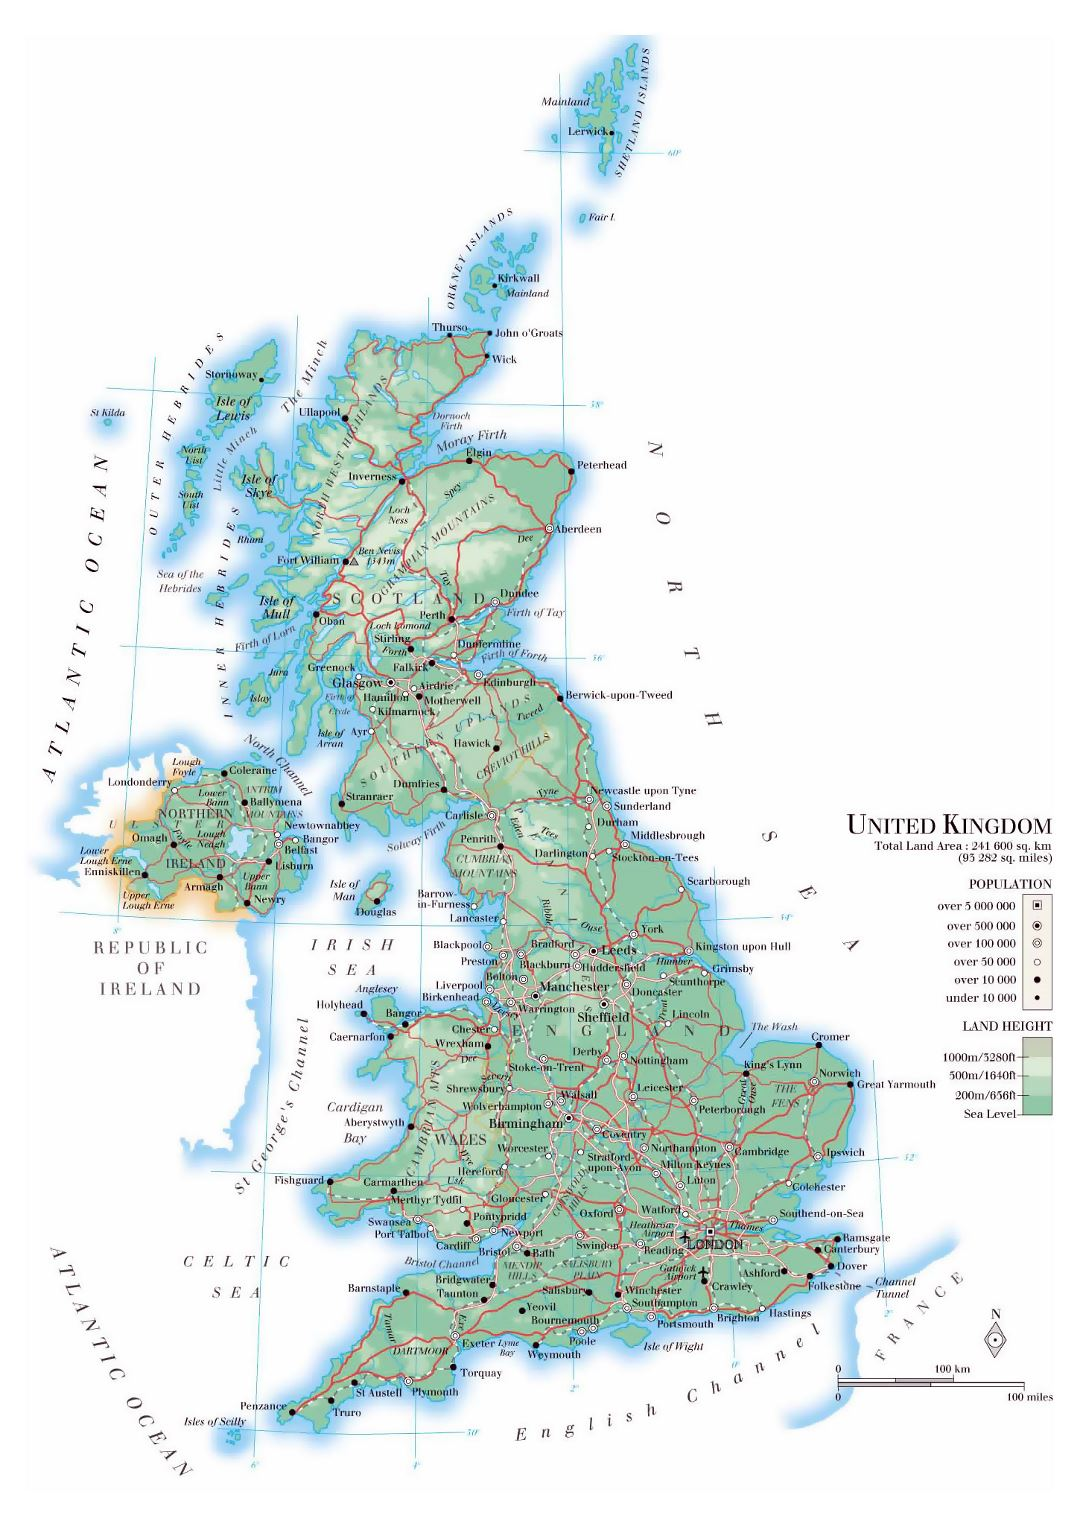 Detailed physical map of United Kingdom with roads, cities and airports